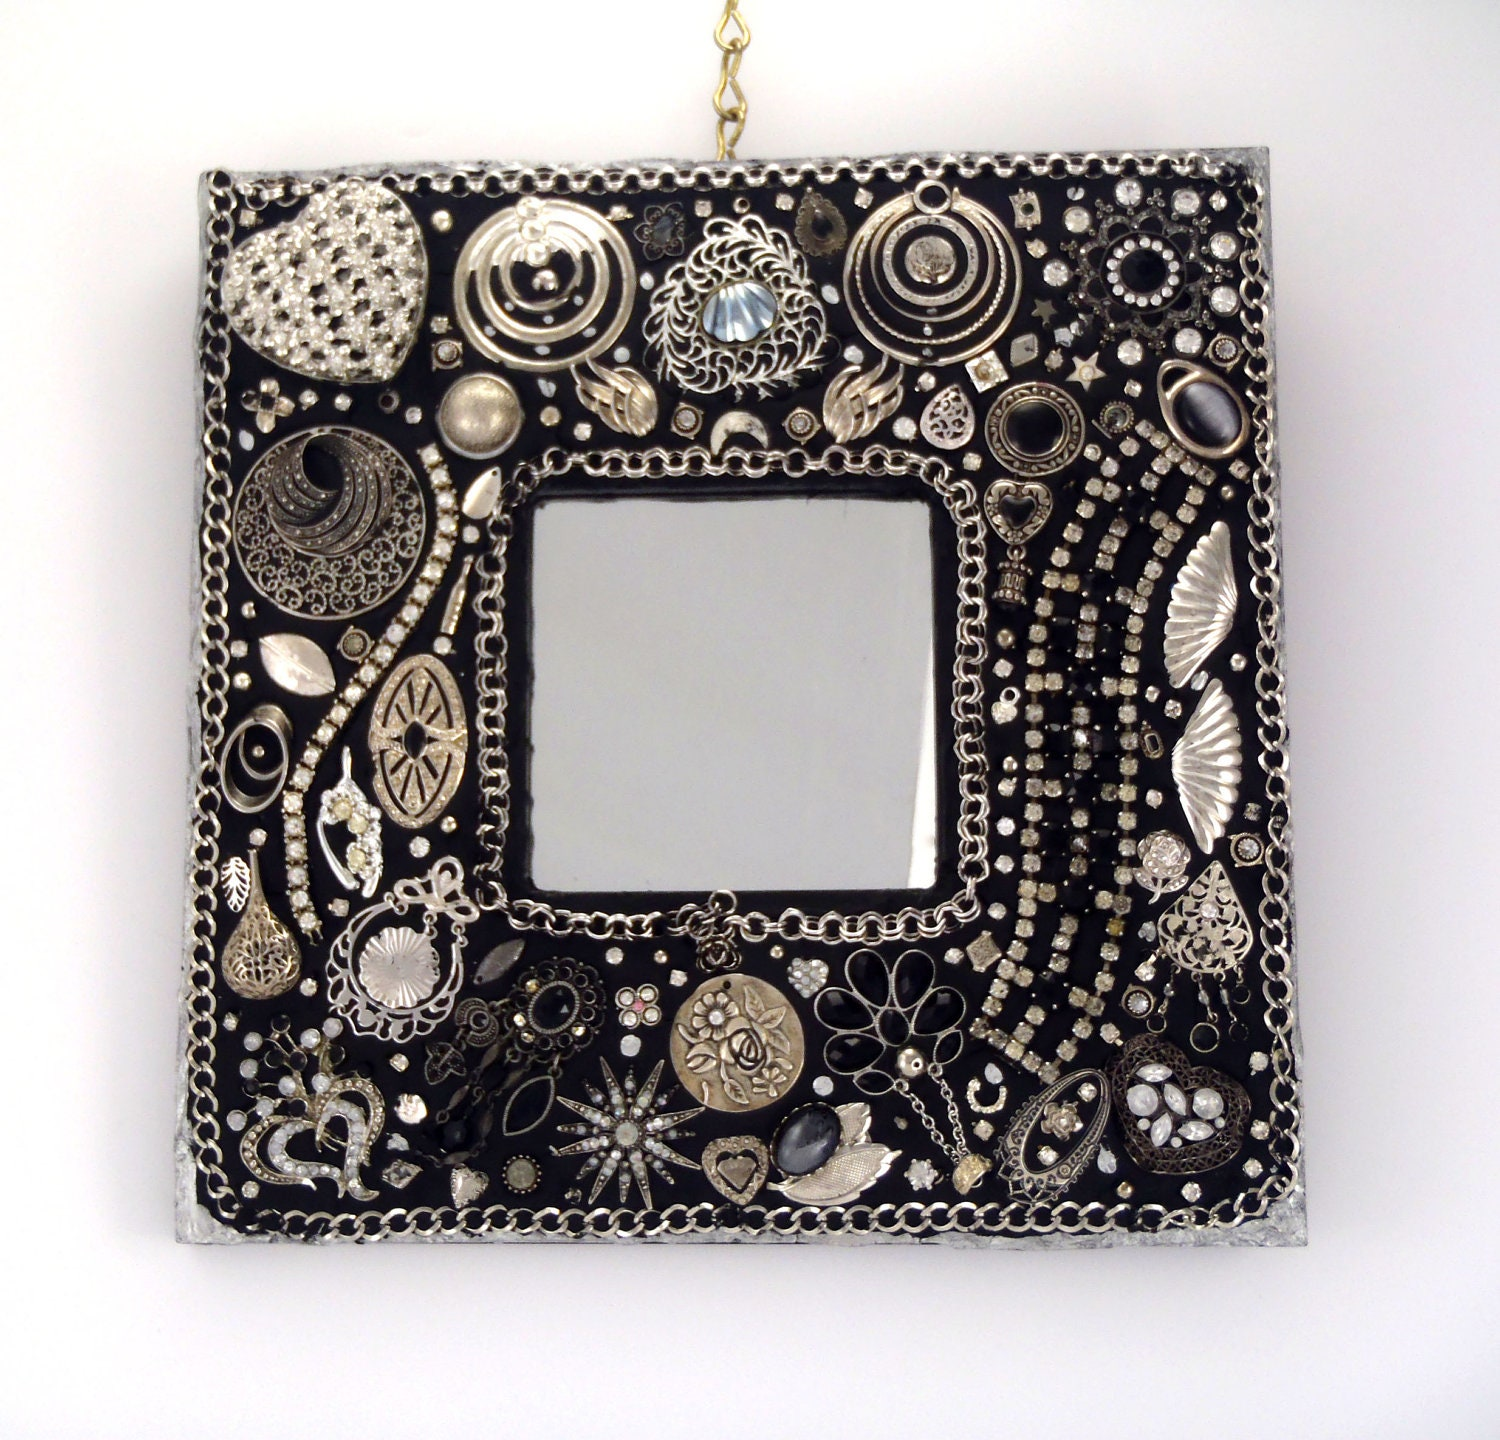 Vintage Jeweled Mosaic Mirror Black and Silver OOAK - Nostalgianmore